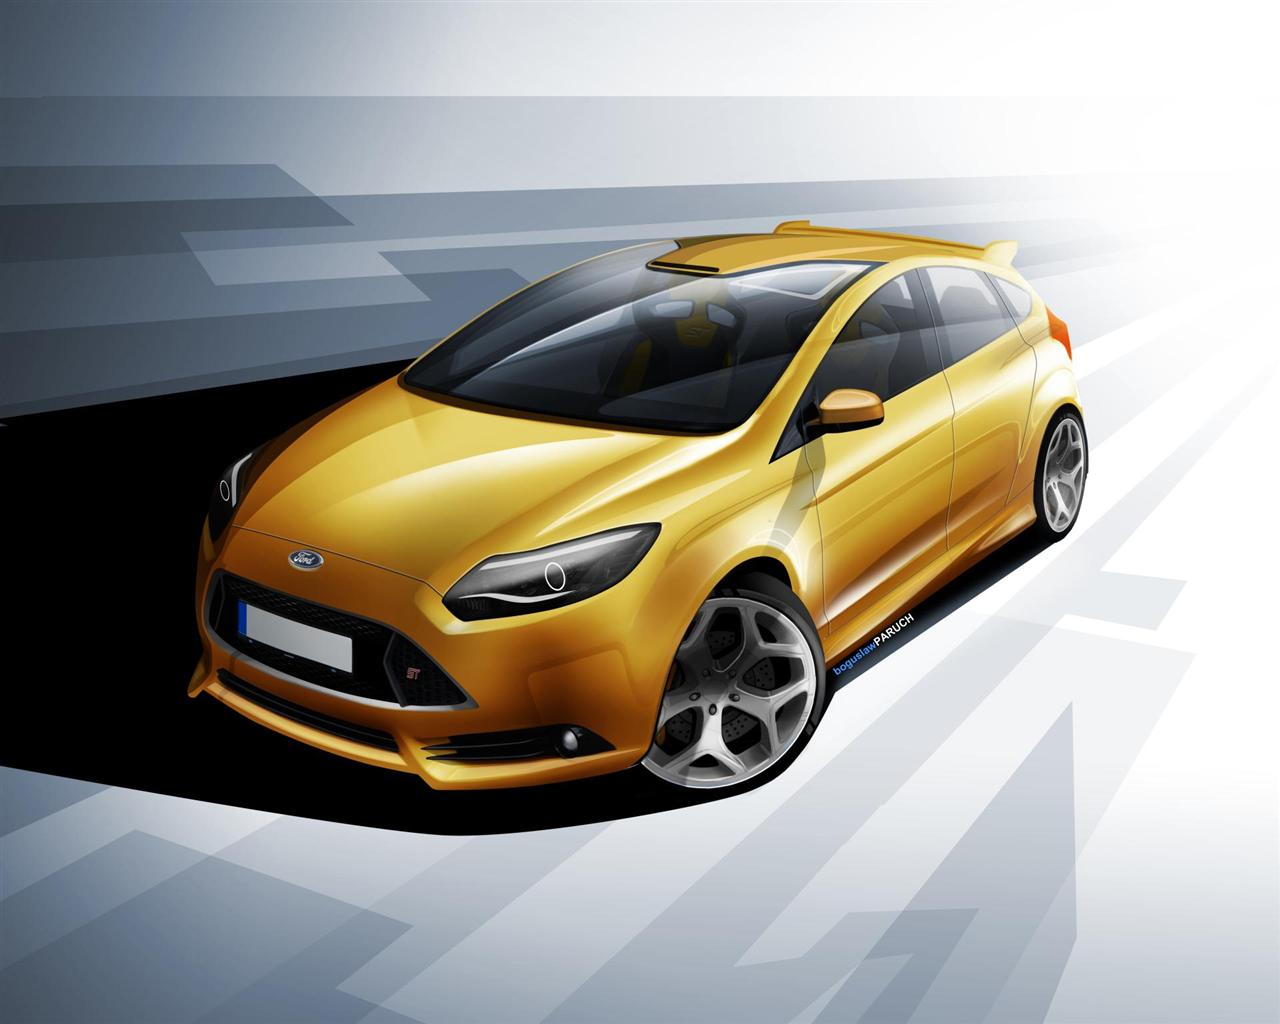 2012 ford focus st images photo ford focus st hatchback 2012 03. Black Bedroom Furniture Sets. Home Design Ideas